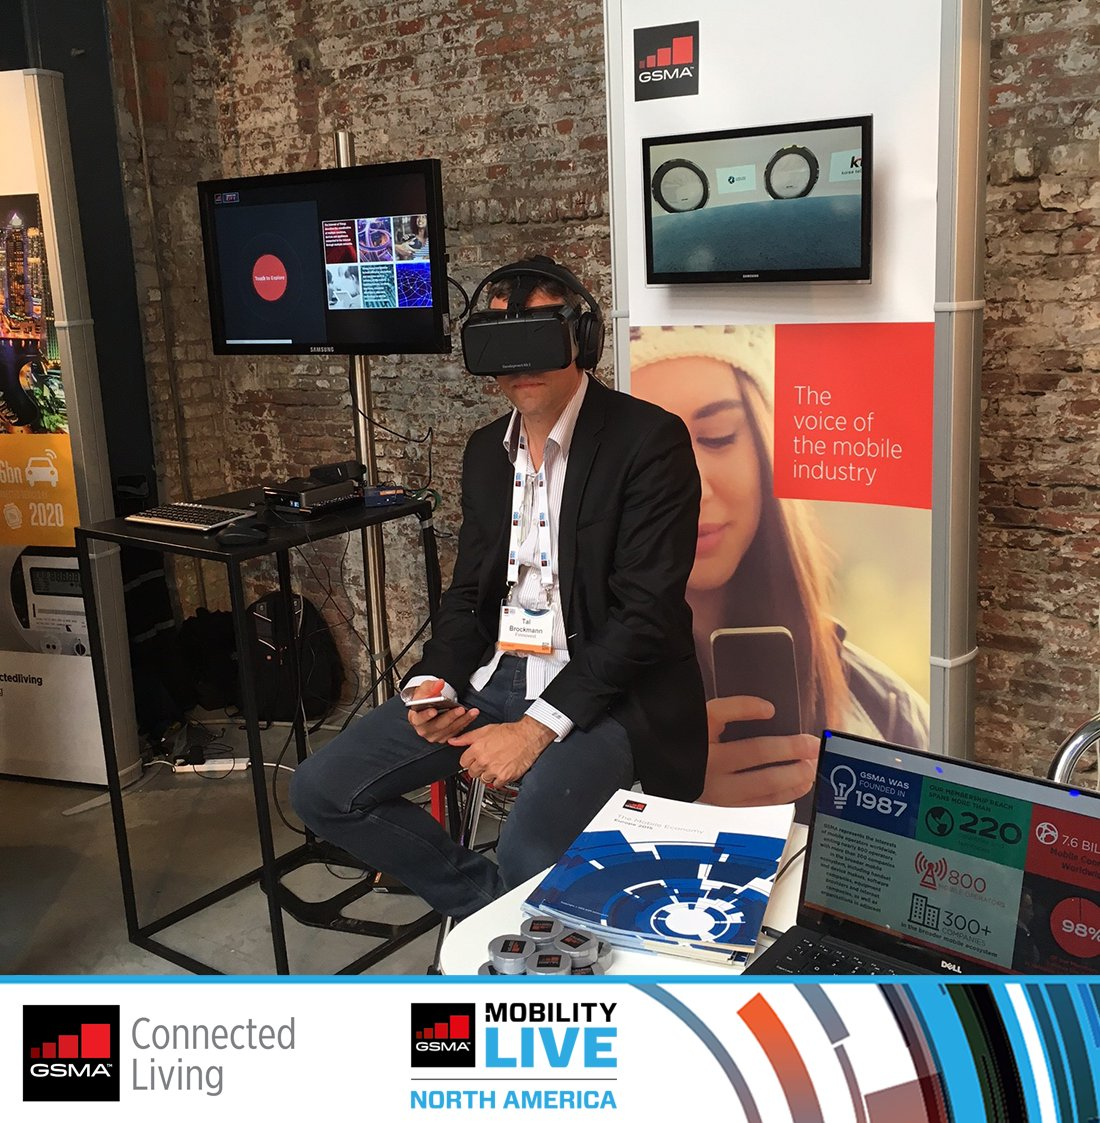 Experience virtual reality first hand at the #ConnectedLiving booth at #GSMAMobilityLive https://t.co/A62hJSkz62 #VR